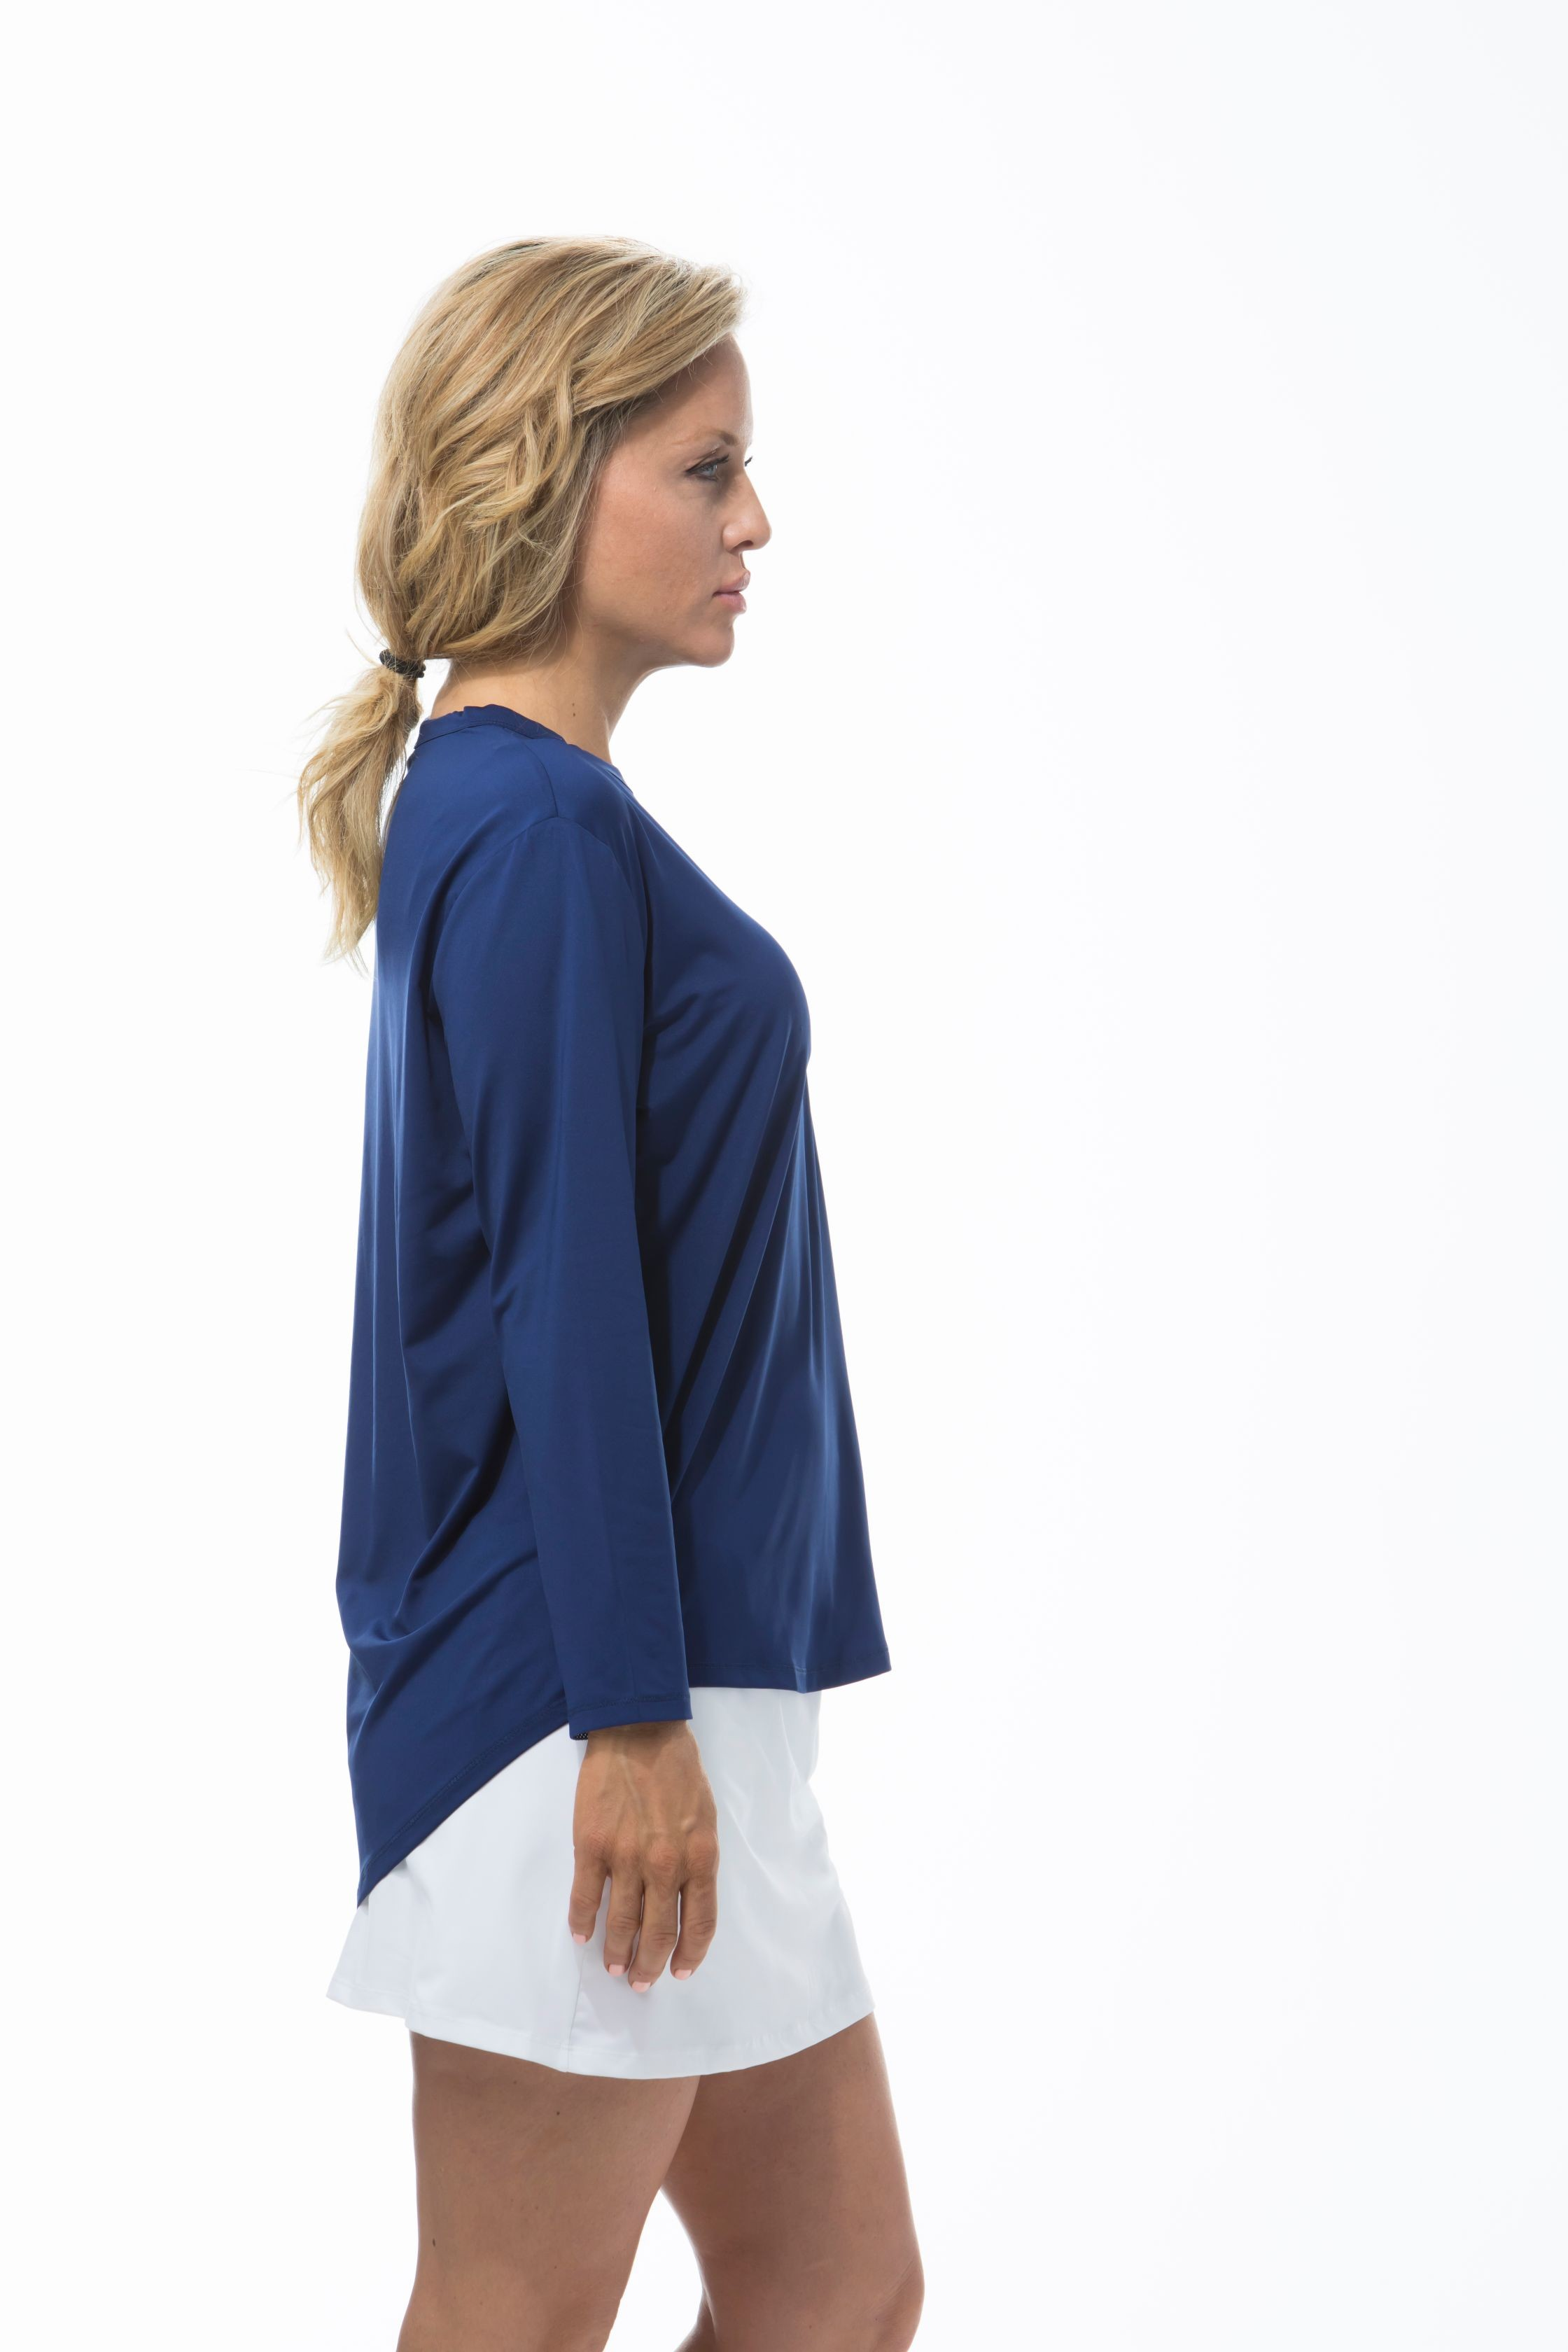 900730 Sunglow Relaxed Tee. Navy Blue